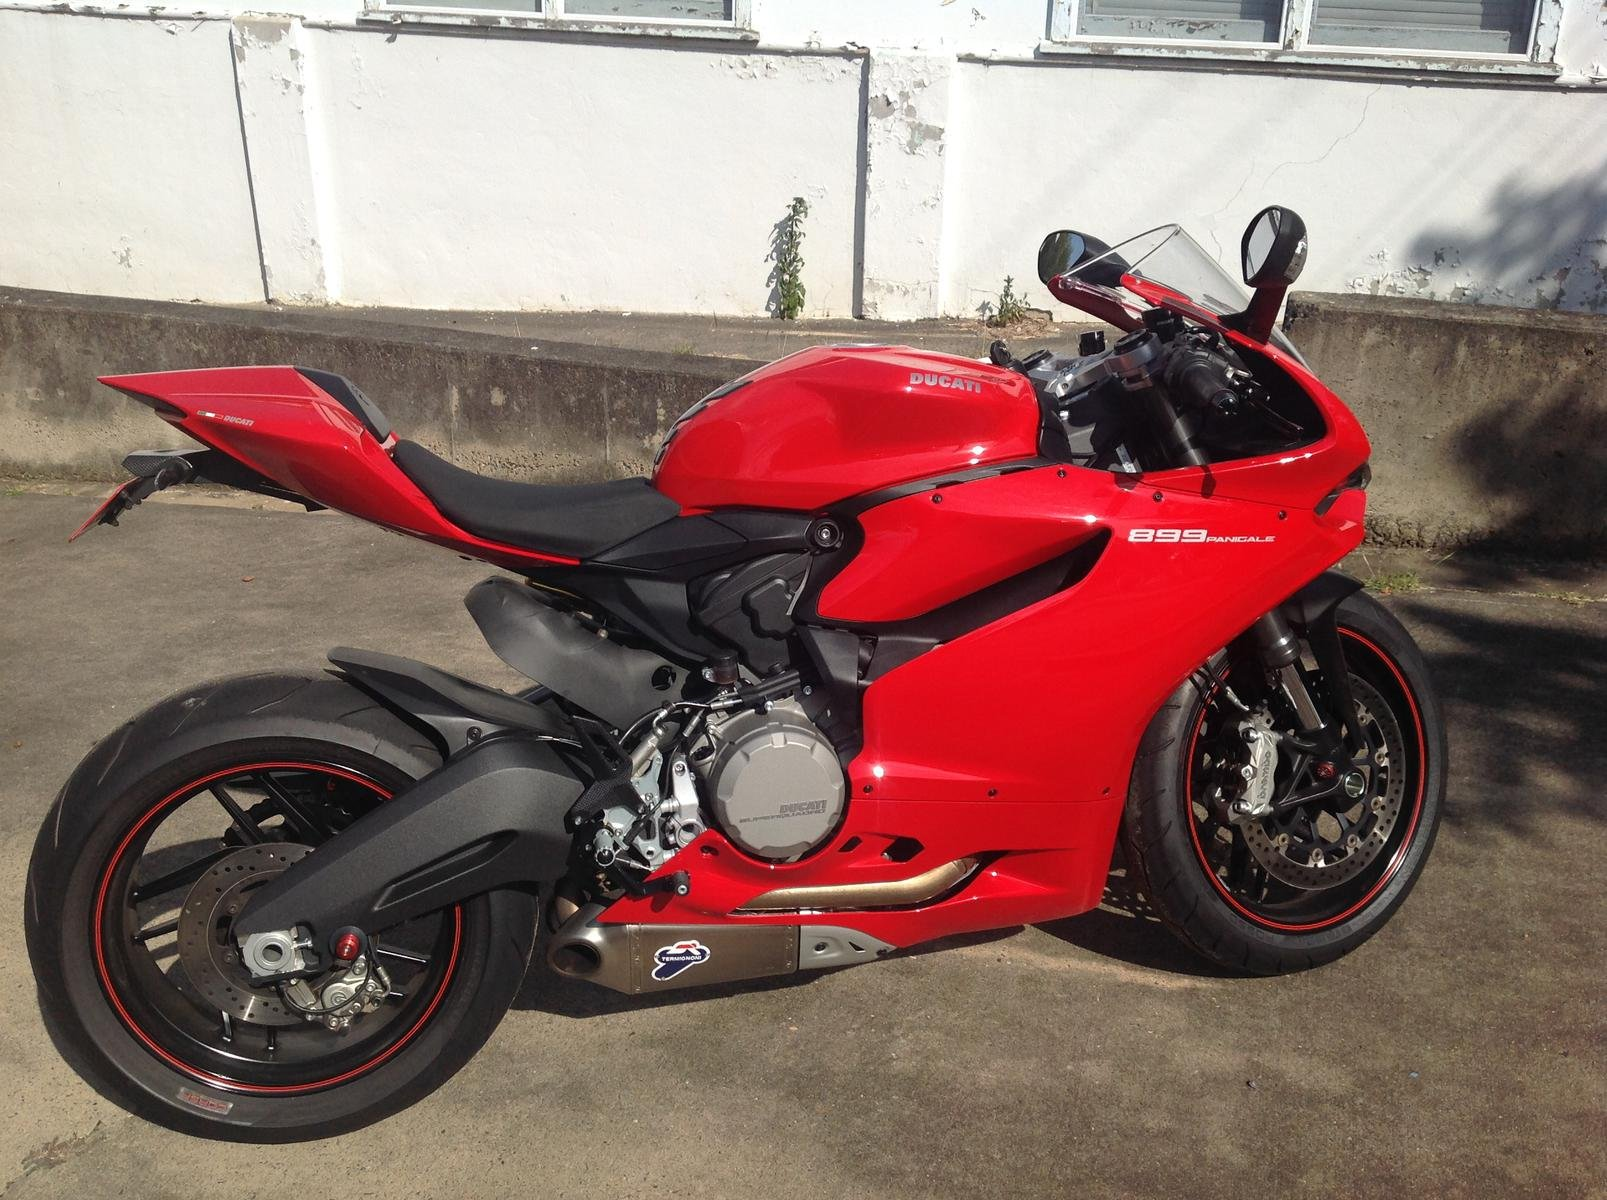 red ducati 899 panigale picture thread page 20 ducati 899 panigale forum. Black Bedroom Furniture Sets. Home Design Ideas